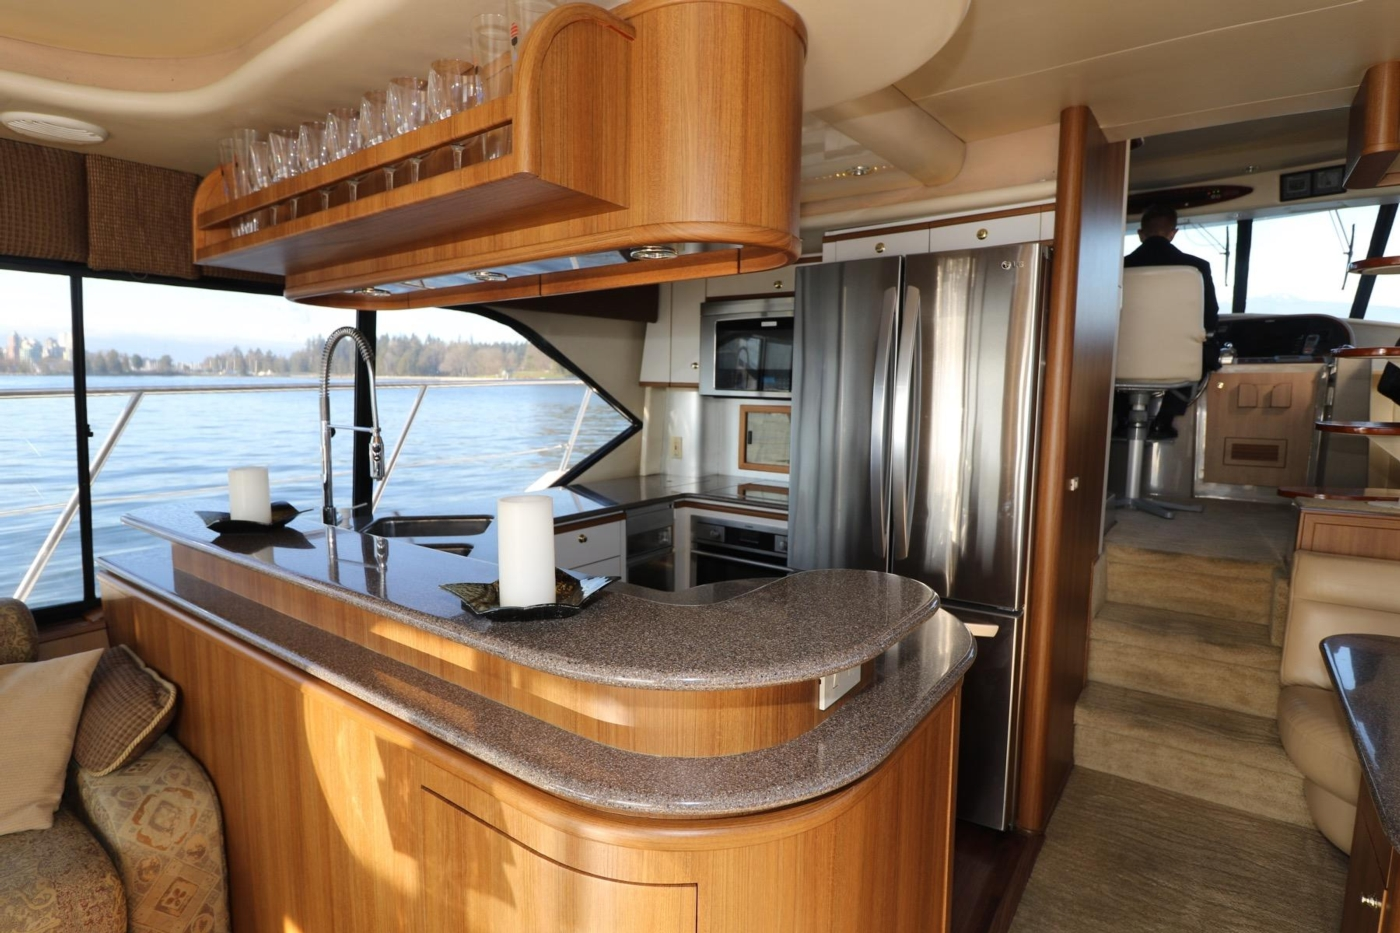 1999 Bayliner 5788 Pilot House Motoryacht, Galley and Pilothouse